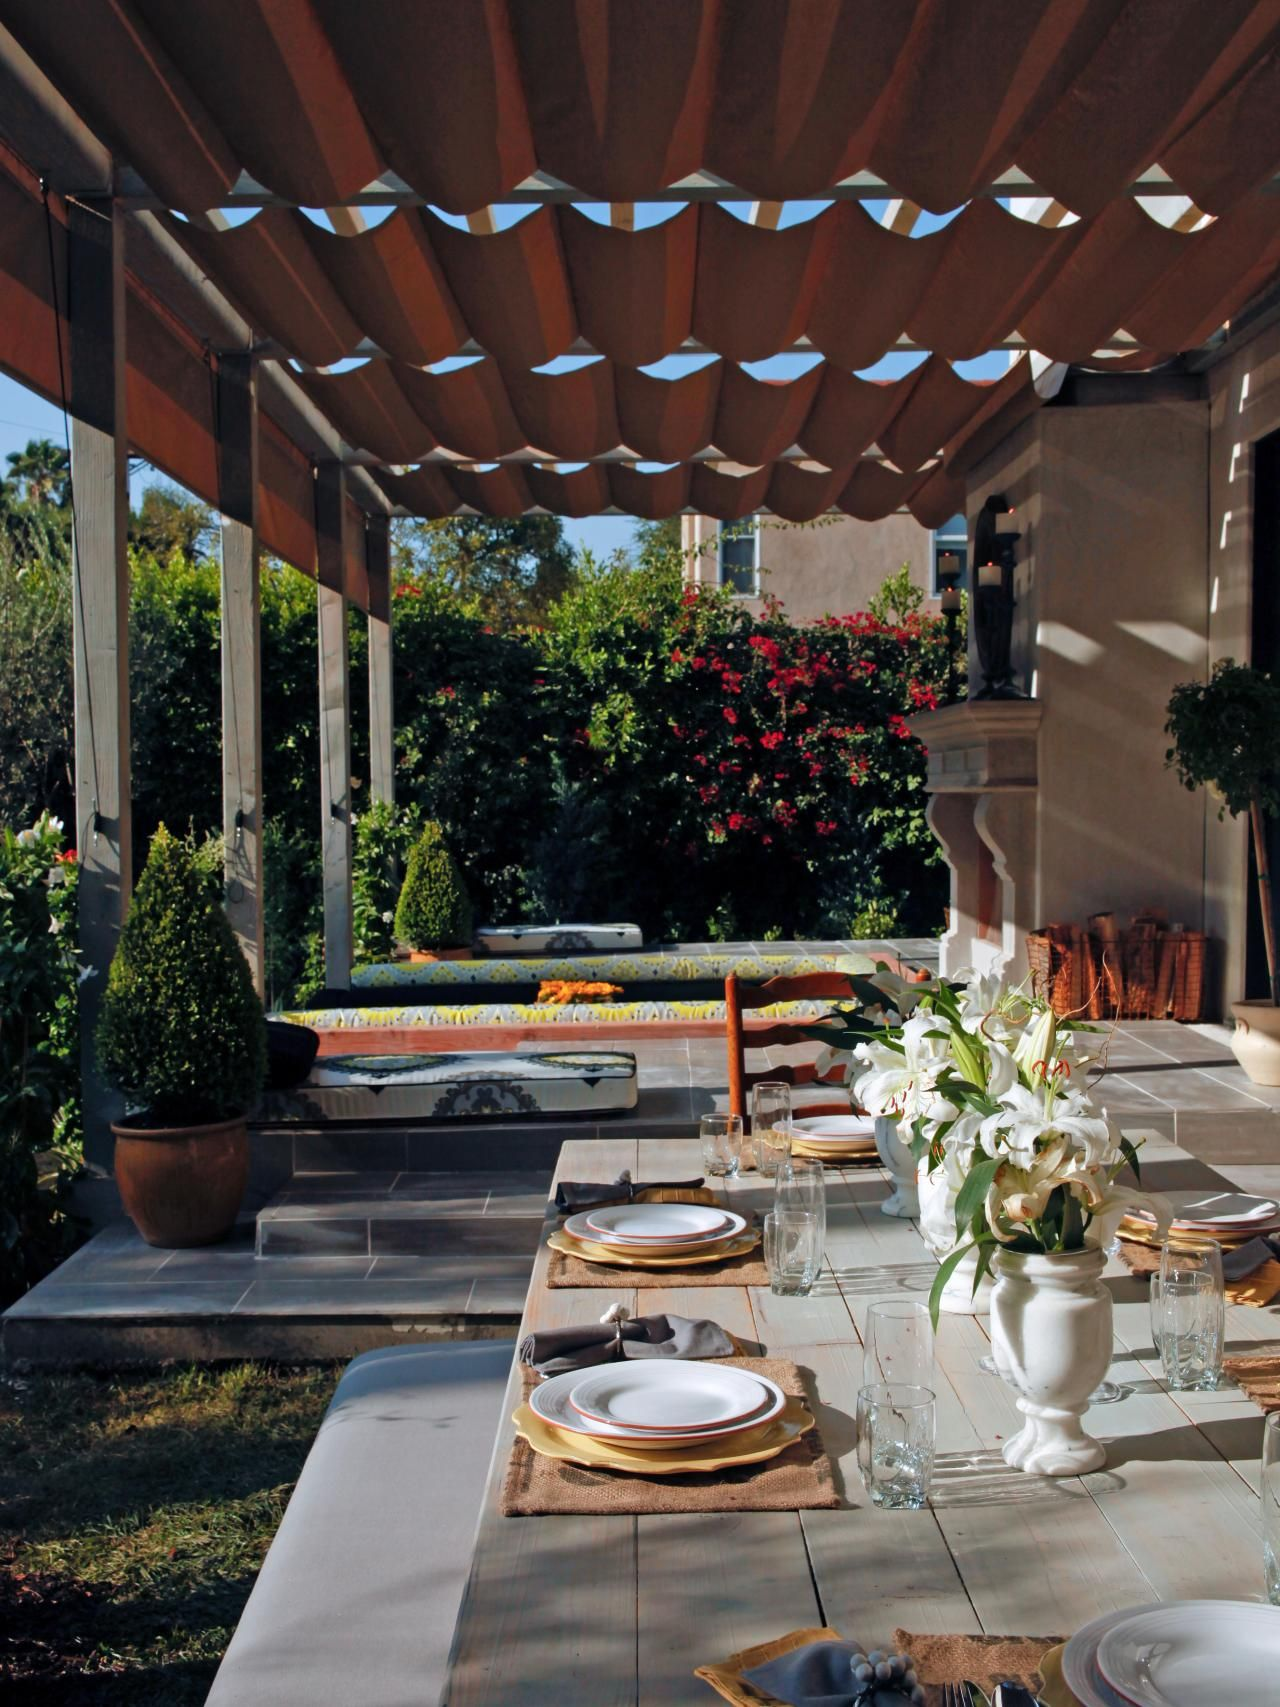 Make Shade Canopies Pergolas Gazebos and More : outdoor deck shade canopies - memphite.com